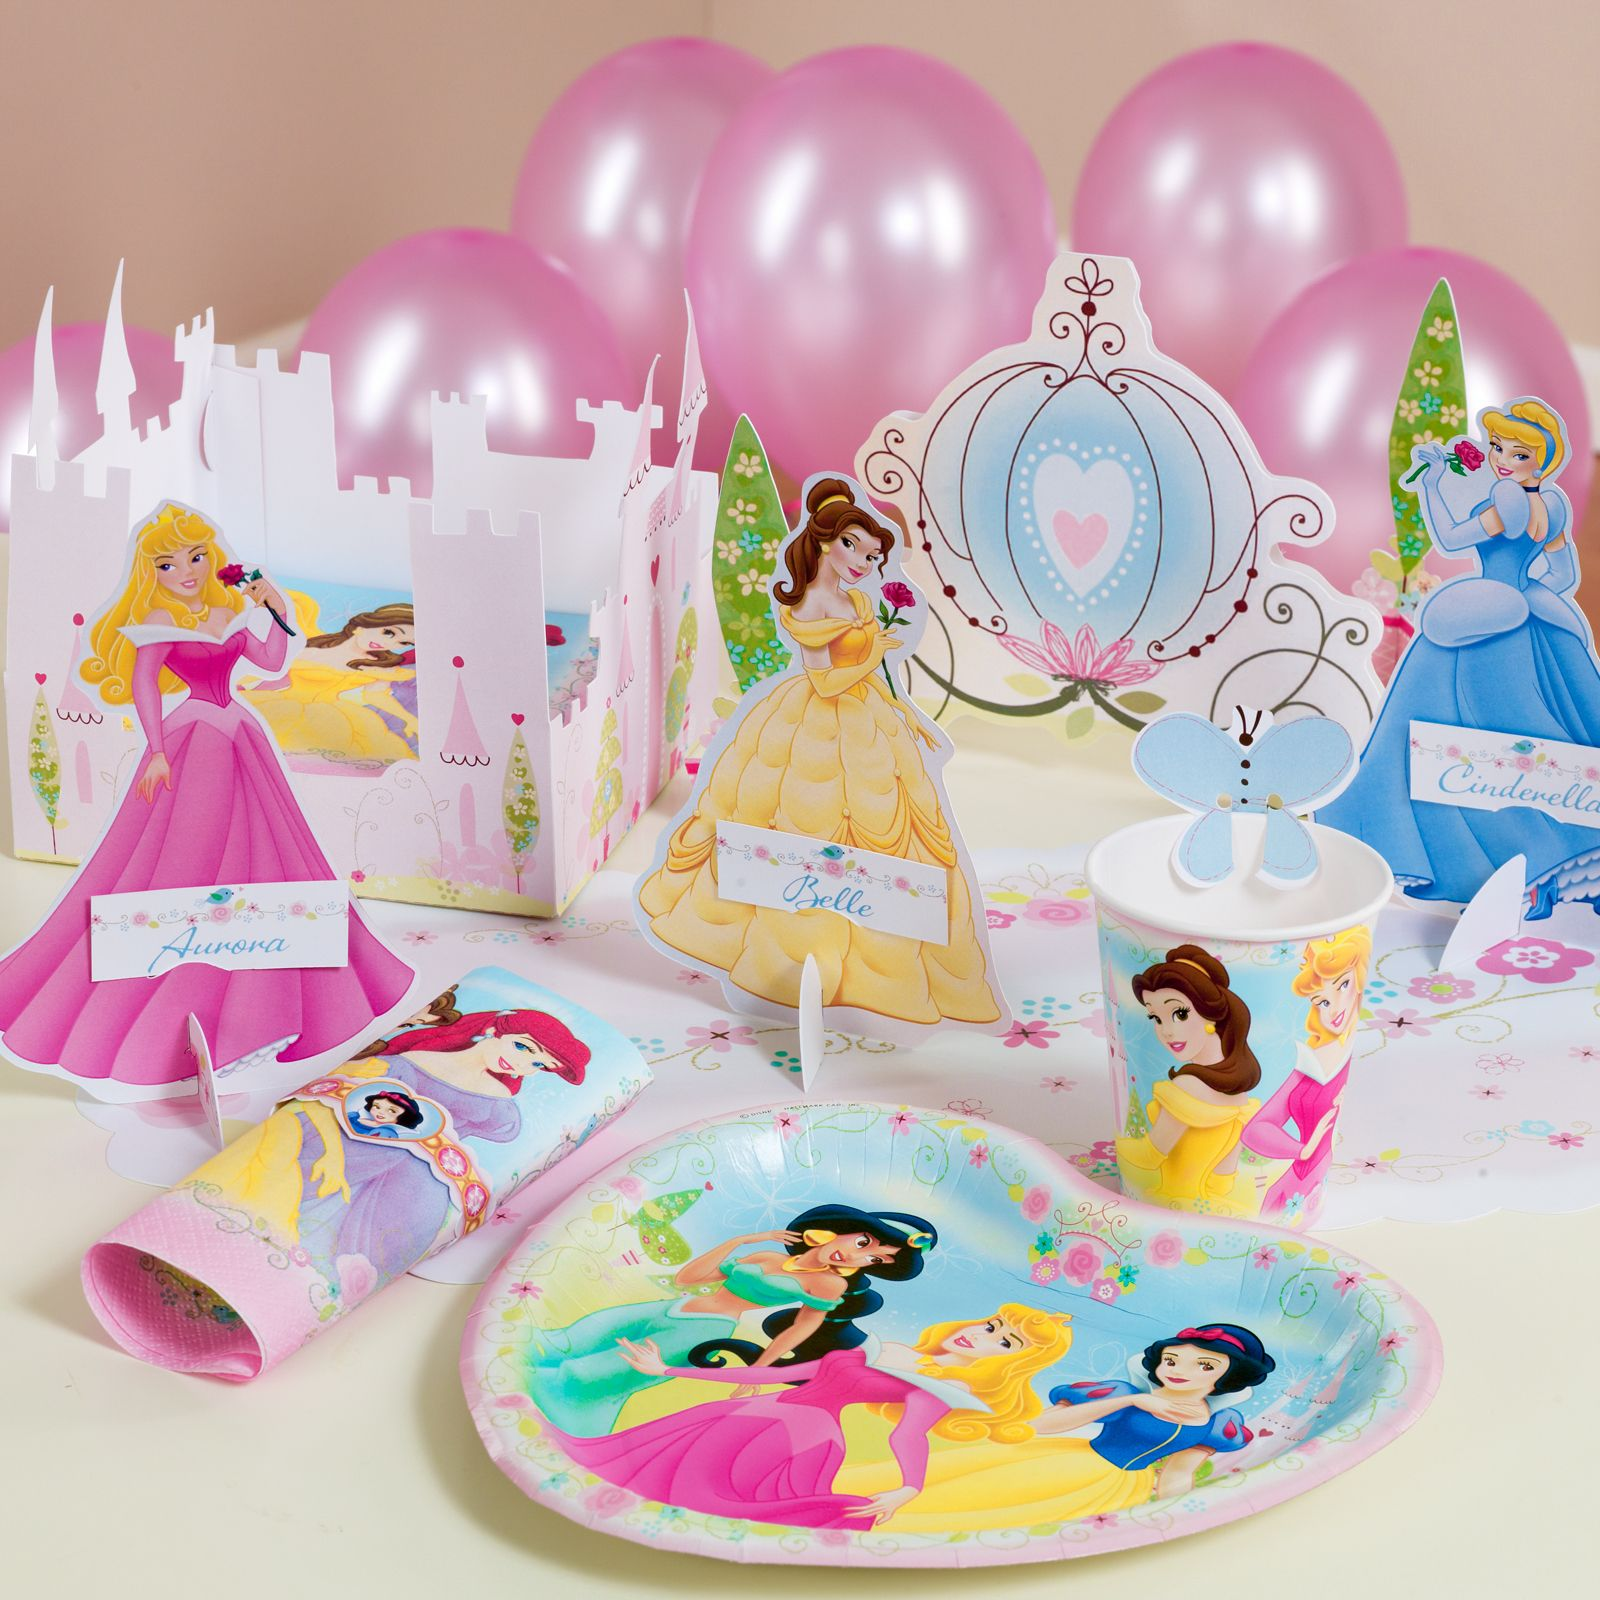 Birthday Decoration At Home For Kids: Disney Princess Decor Book